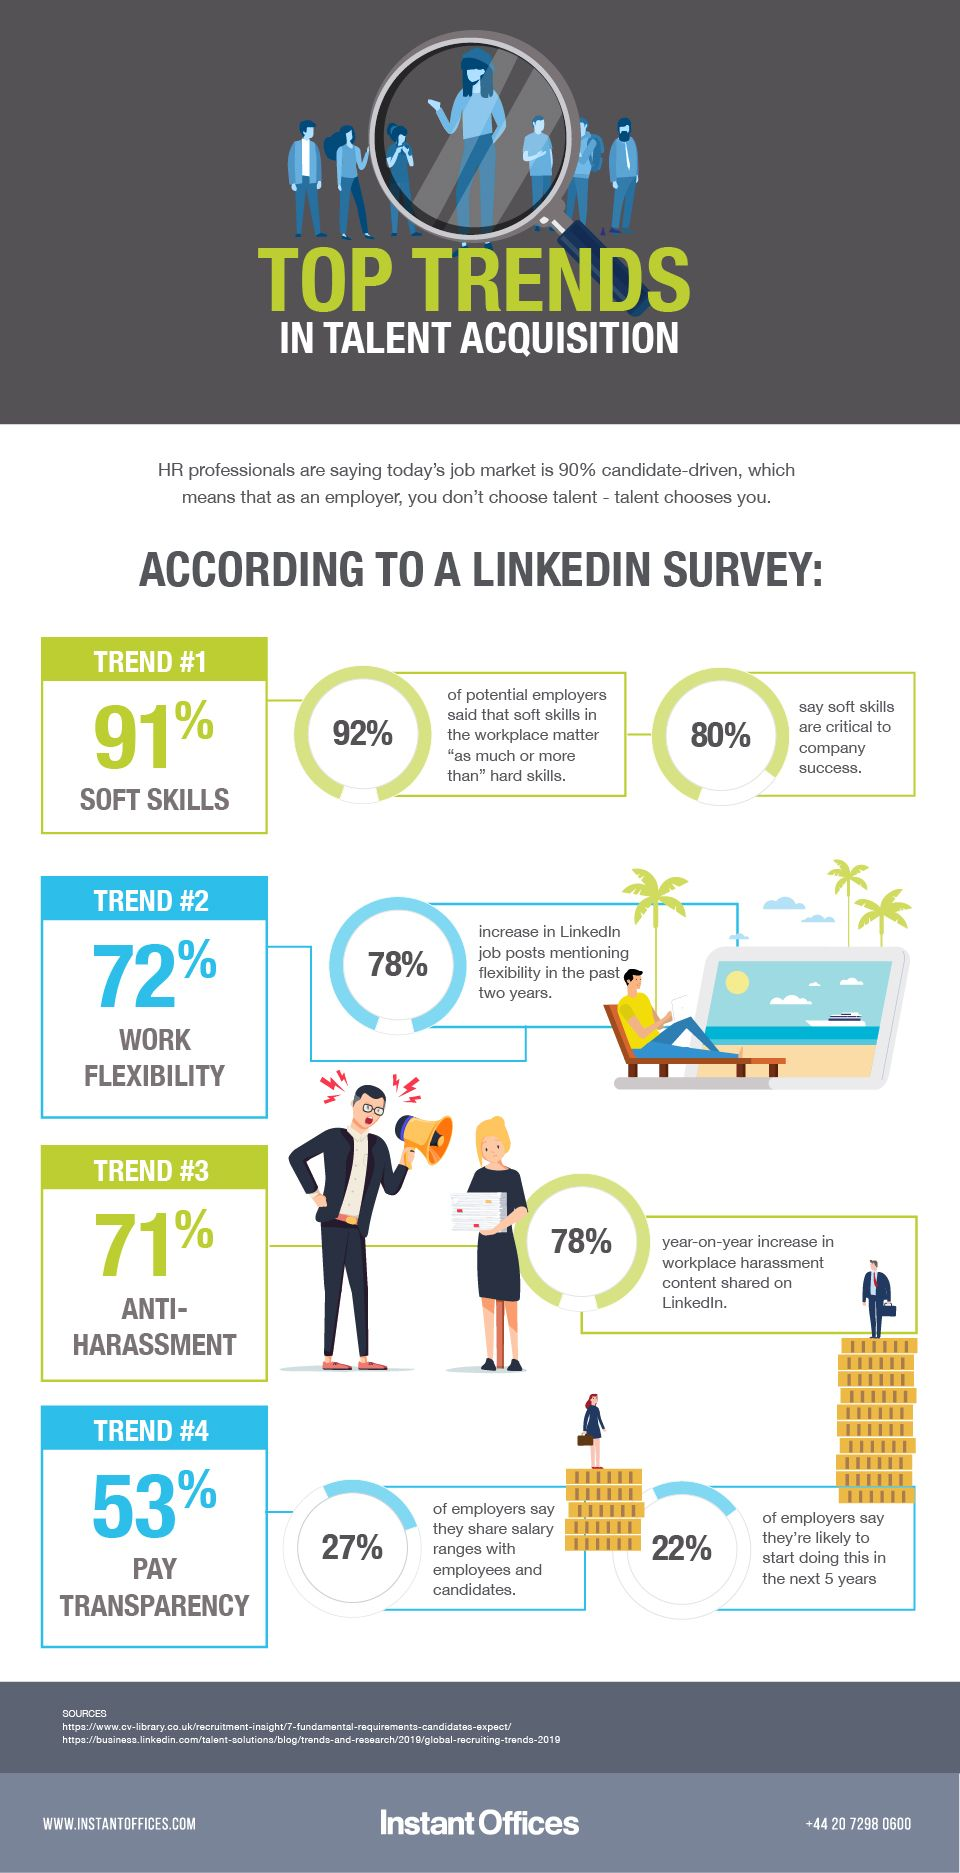 An infographic detailing the top trends in talent acquisition.